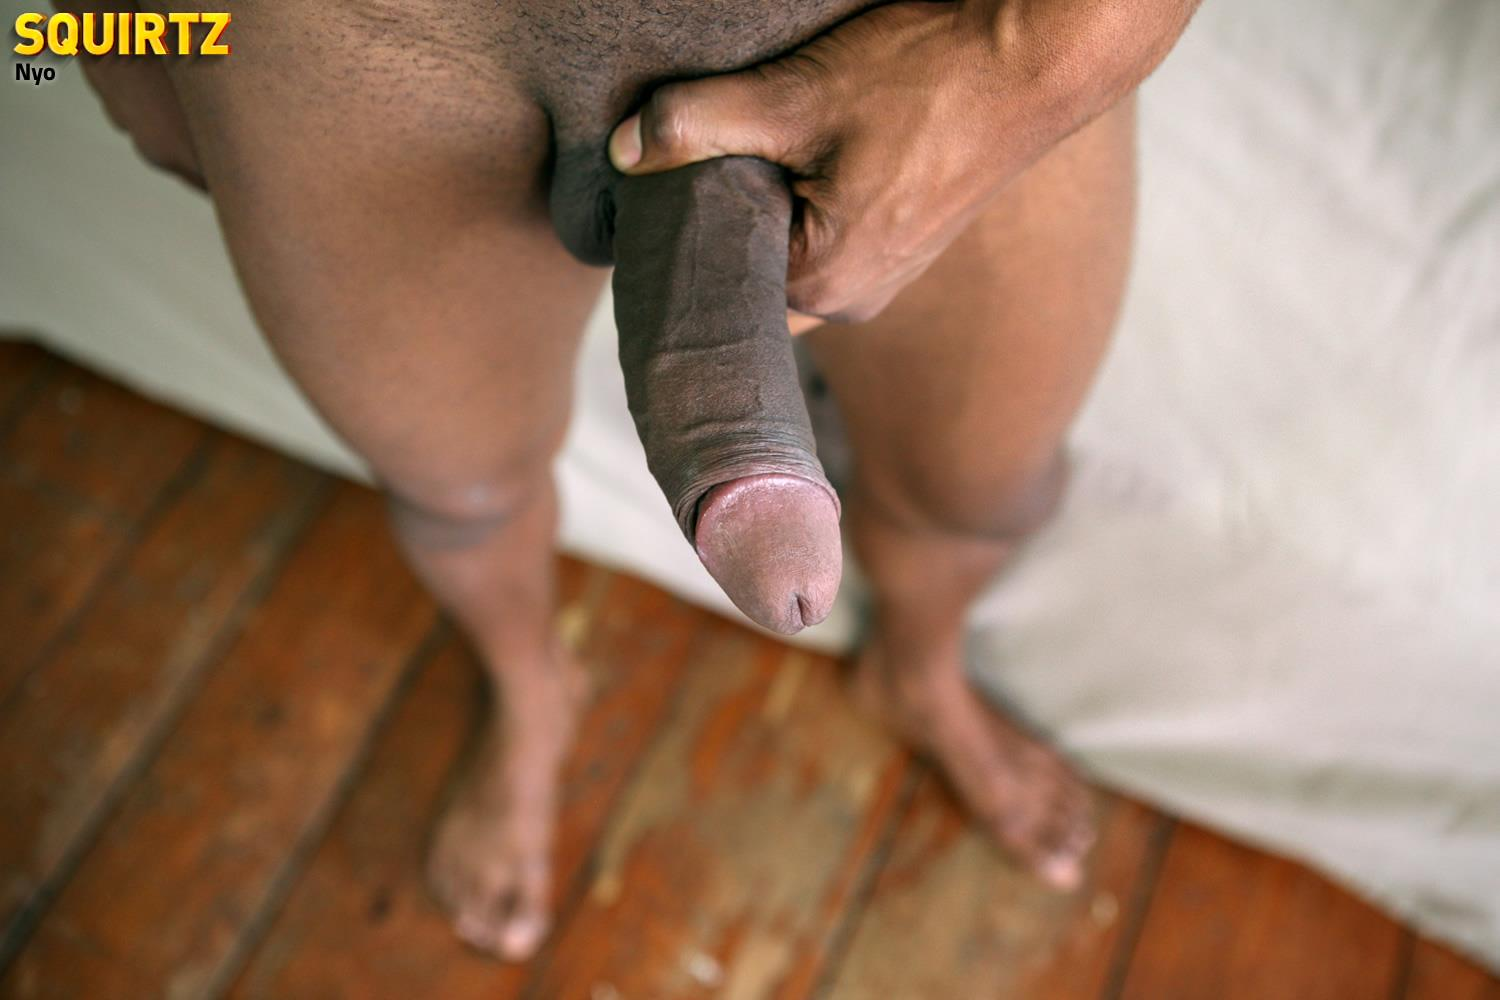 Squirtz-Nyo-Big-Uncut-Black-Cock-Jerking-Off-Cum-Shot-Amateur-Gay-Porn-23 Young Black Guy Jerking His Massive Uncut Black Cock